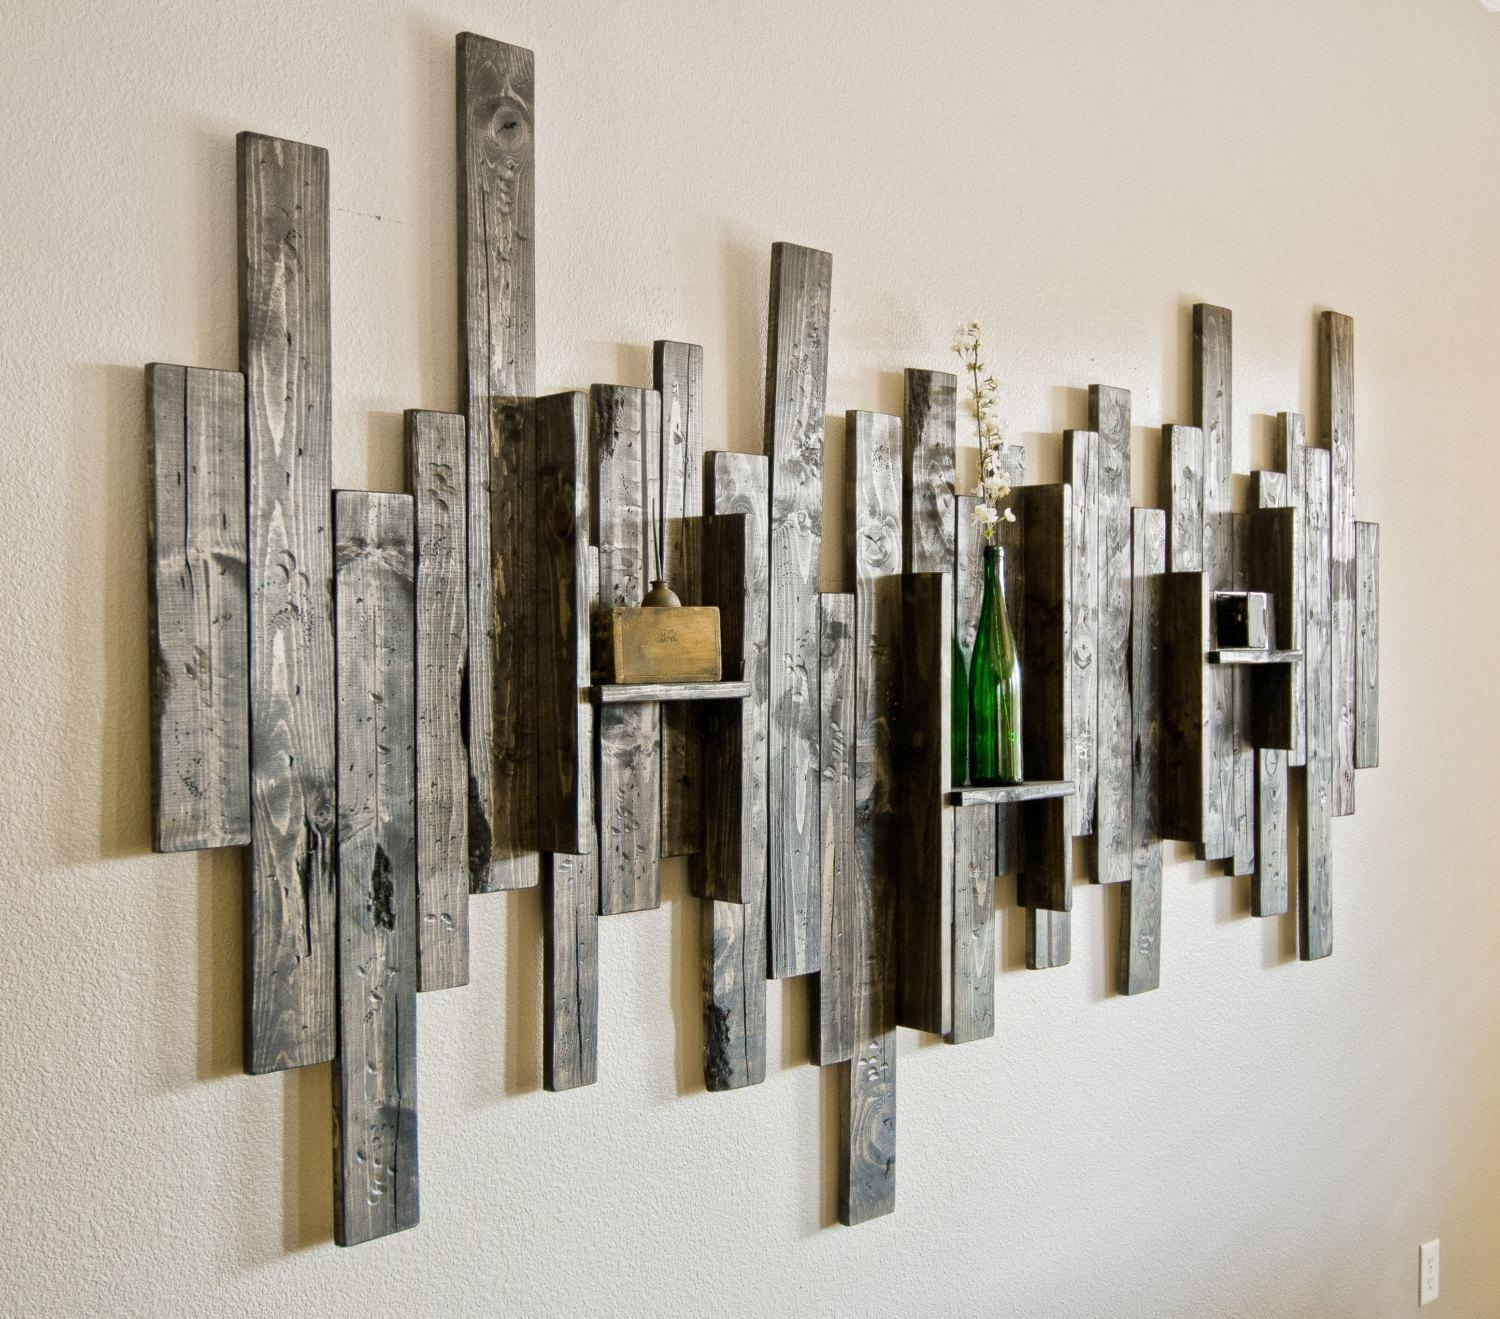 Rustic Display Shelf Decorative Wall Art Intended For Large Unique Wall Art (Image 13 of 20)